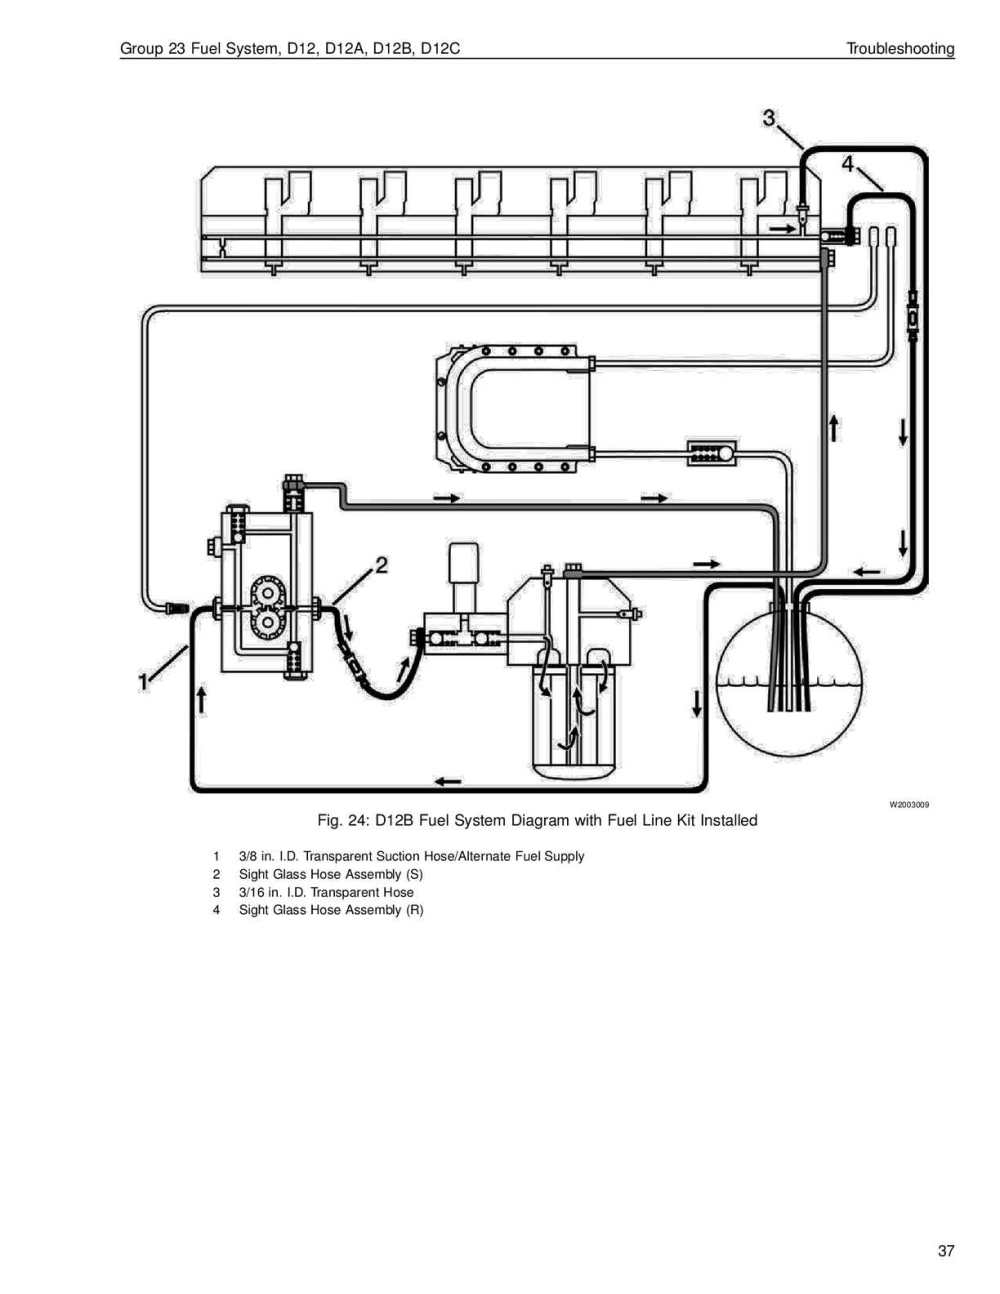 medium resolution of general fuel pressure diagram wiring diagrams bib general fuel pressure diagram